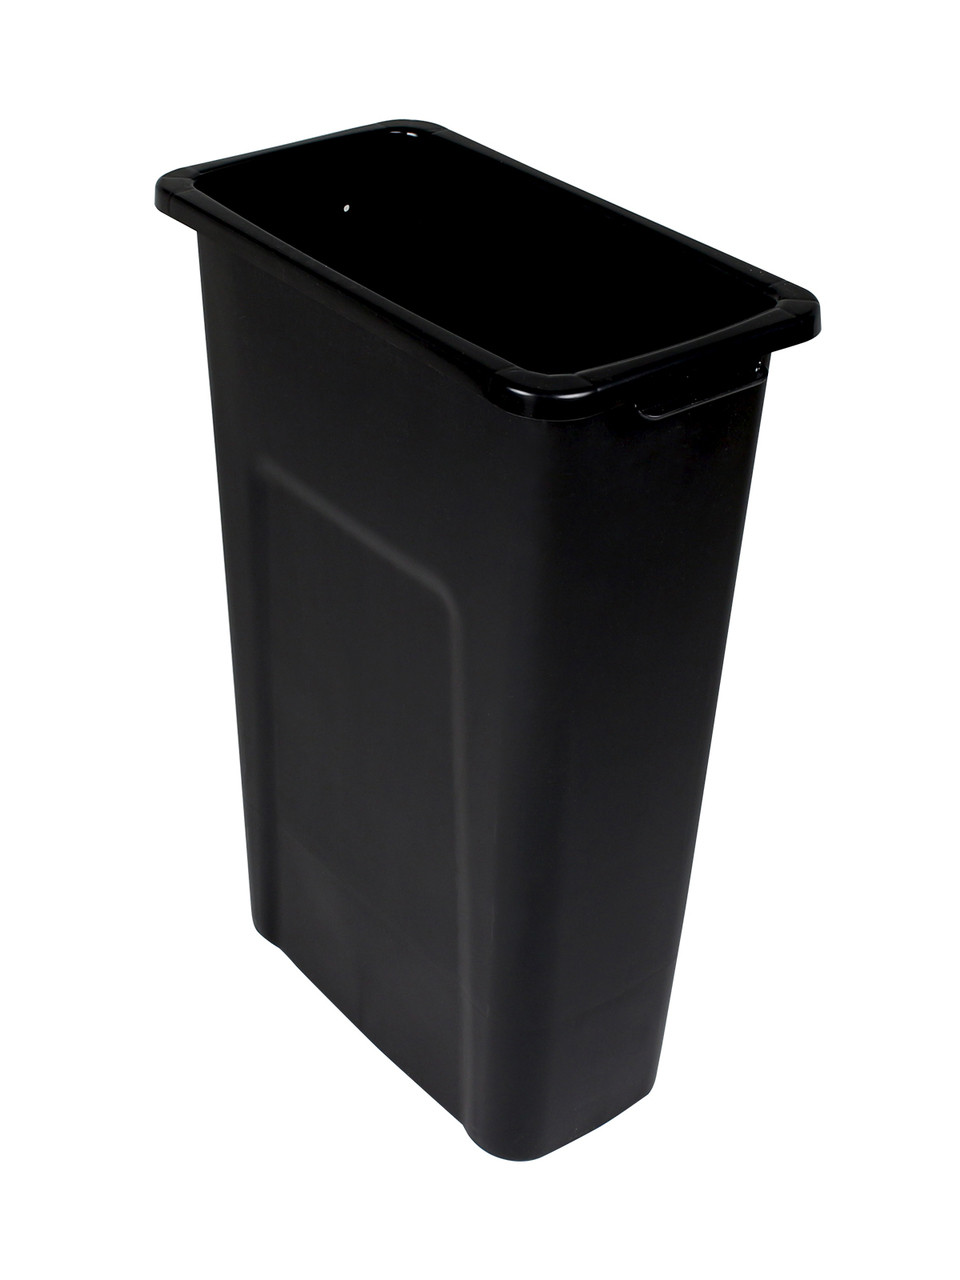 20 Gallon Skinny Plastic Home & Office Trash Can Black